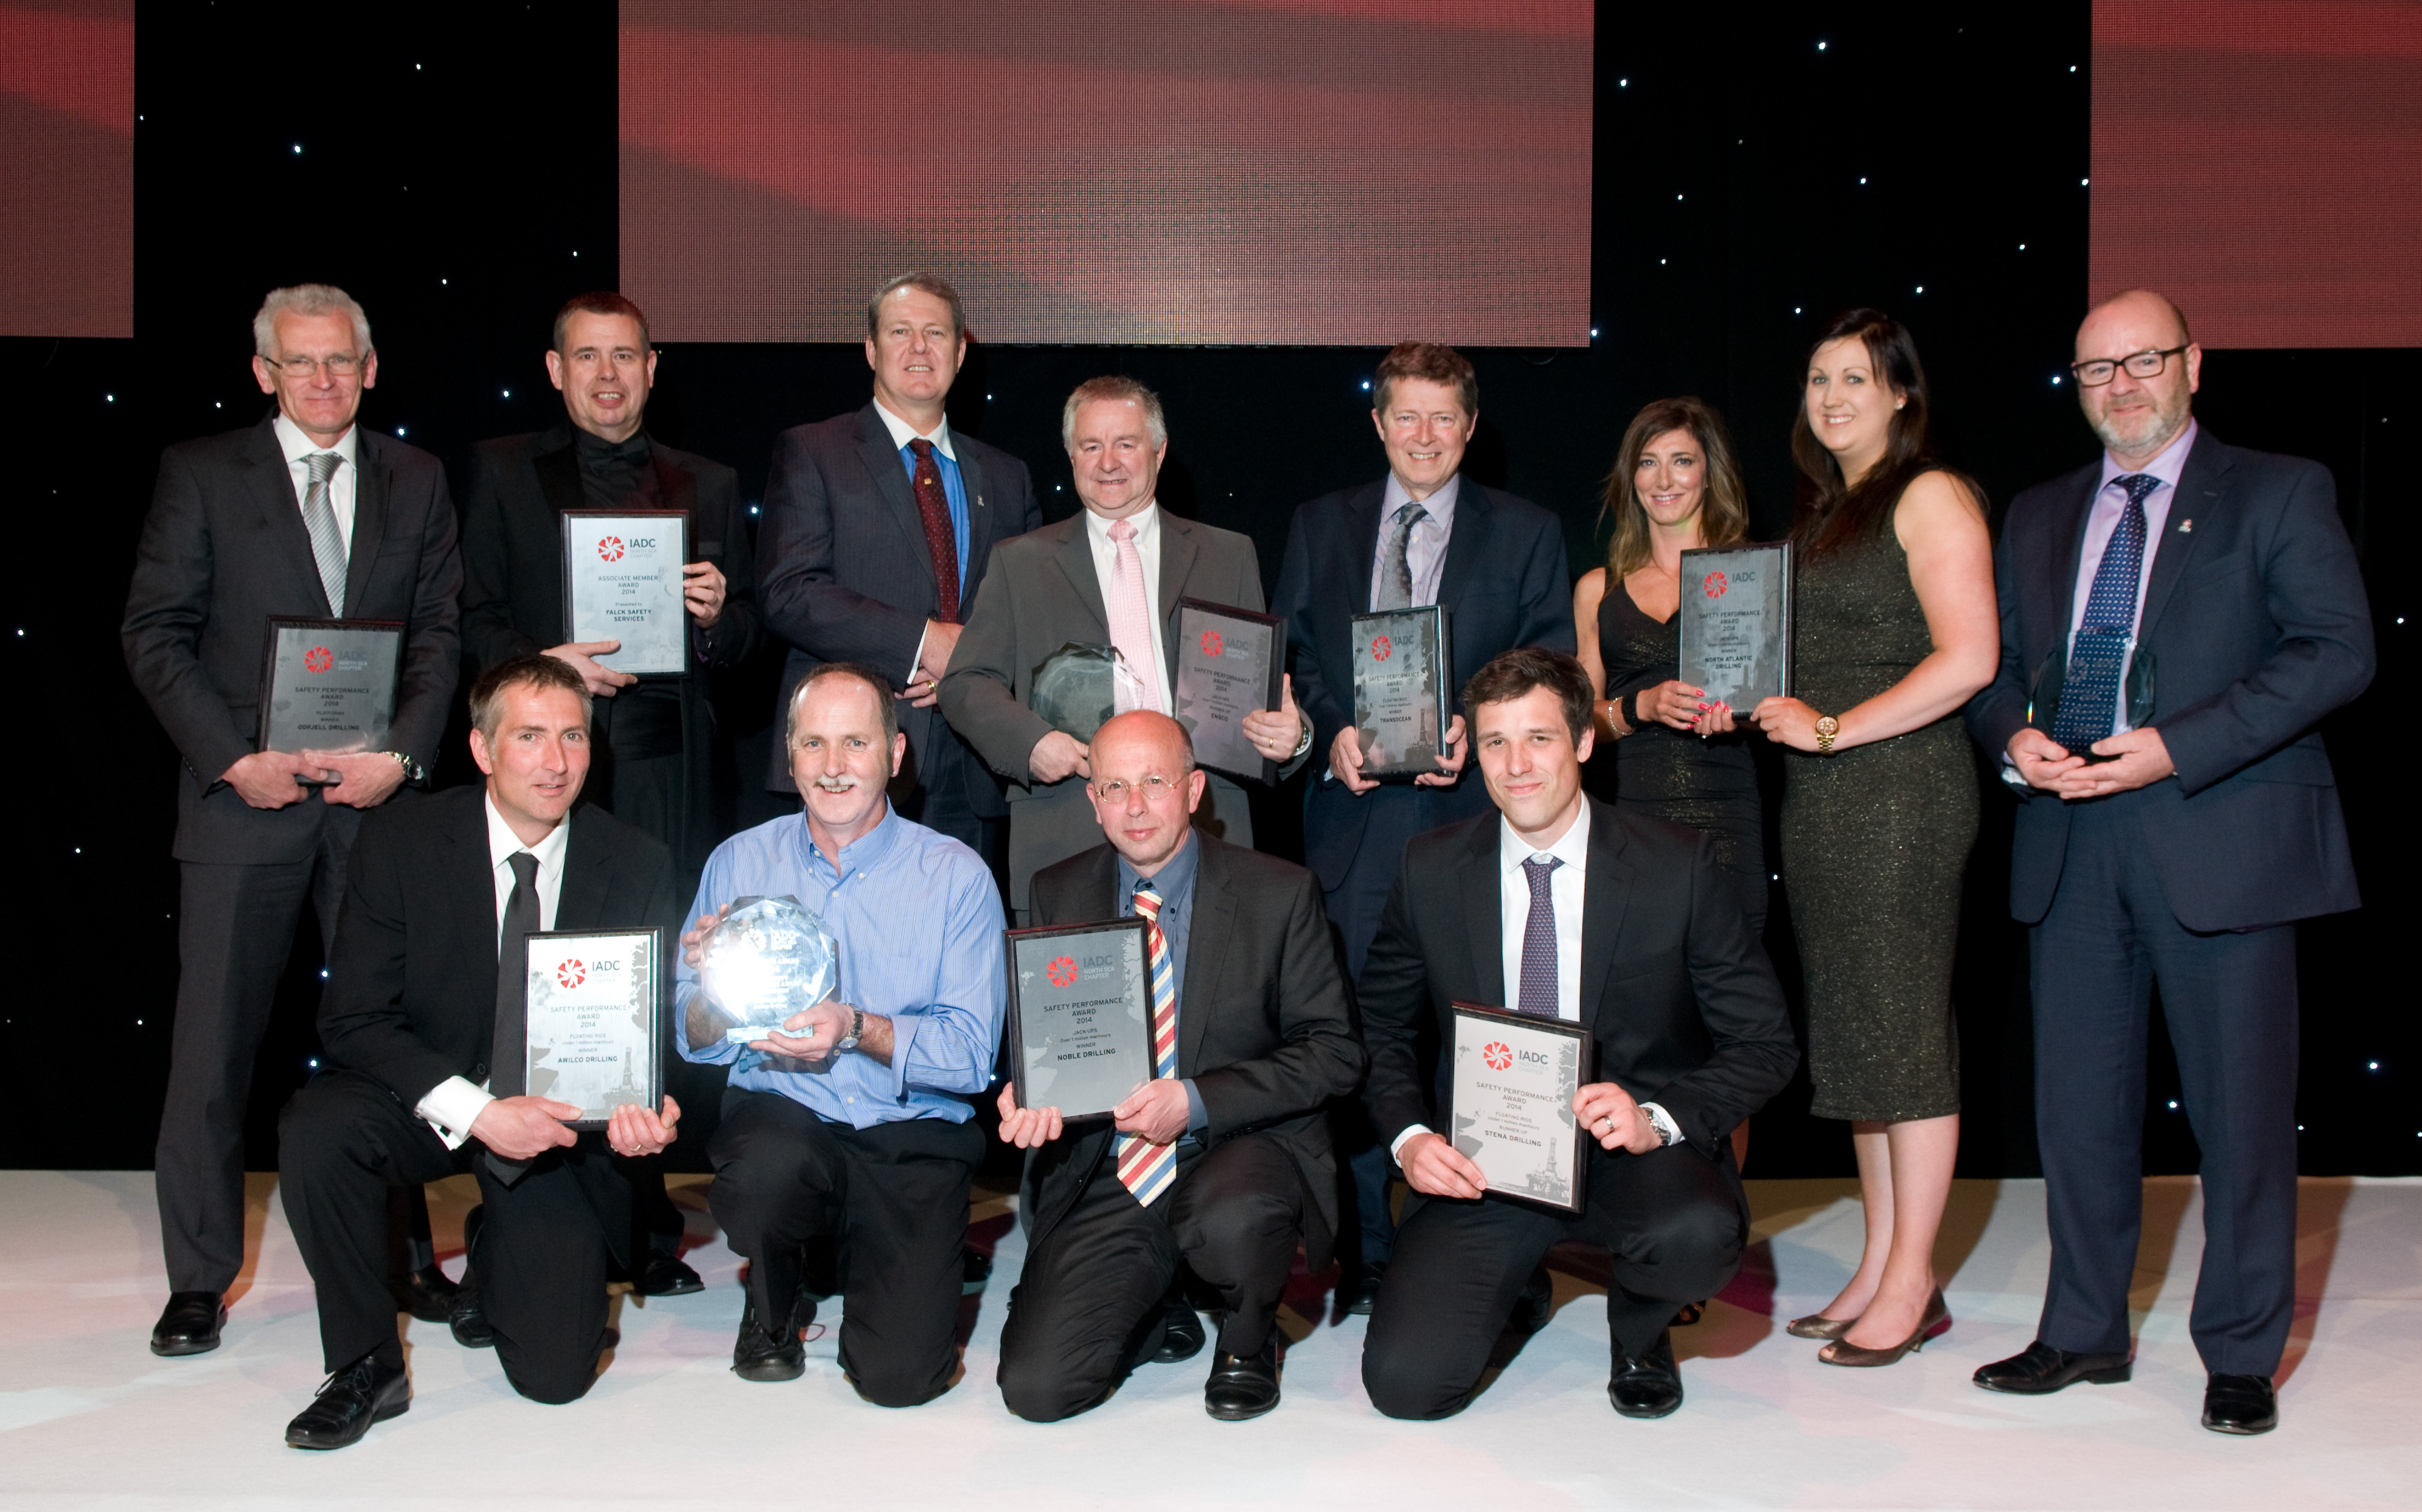 IADC safety awards winners and runners-up 2015, Left to right: BACK ROW: Eddie Fowler, Odfjell Drilling; Neil Burr, Falck Safety Services; Lee Reborse, Noble Drilling; Eric Holmes, Ensco; Adrian Blake, Transocean; Nicola Riddel and Eilidh Shaw, North Atlantic Drilling; Jim Paterson, KCA Deutag. FRONT ROW: Mike Brumfield, Awilco Drilling; Pete Thomson, on behalf of Awilco Drilling; Hans Krielen, Noble Drilling; Tony Rhodes, Stena Drilling